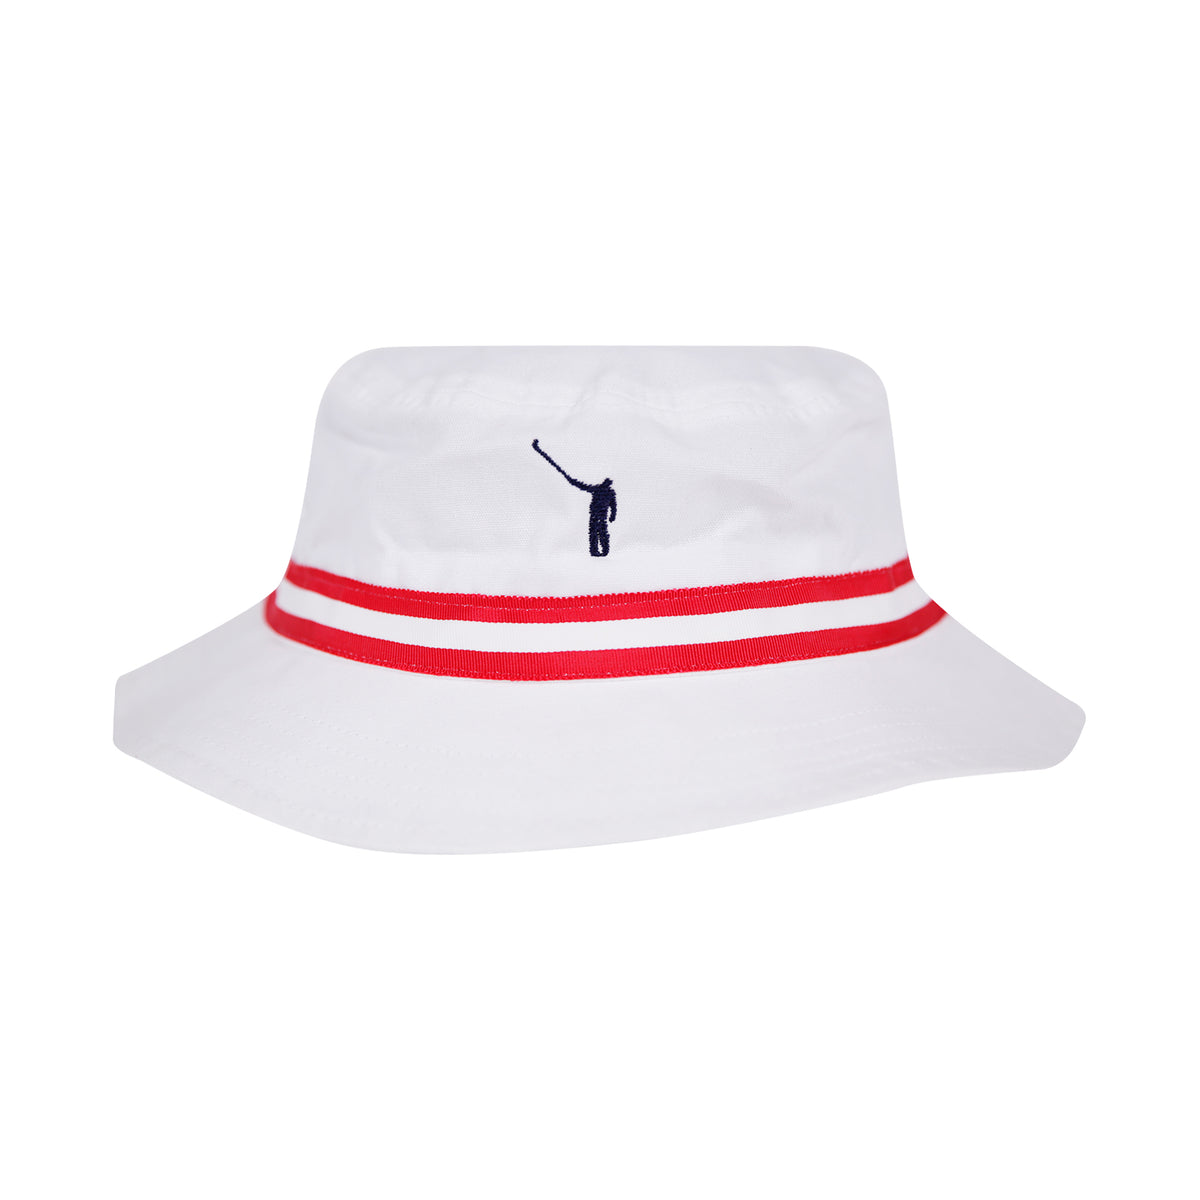 The No Laying Up Bucket | Red, White & Blue